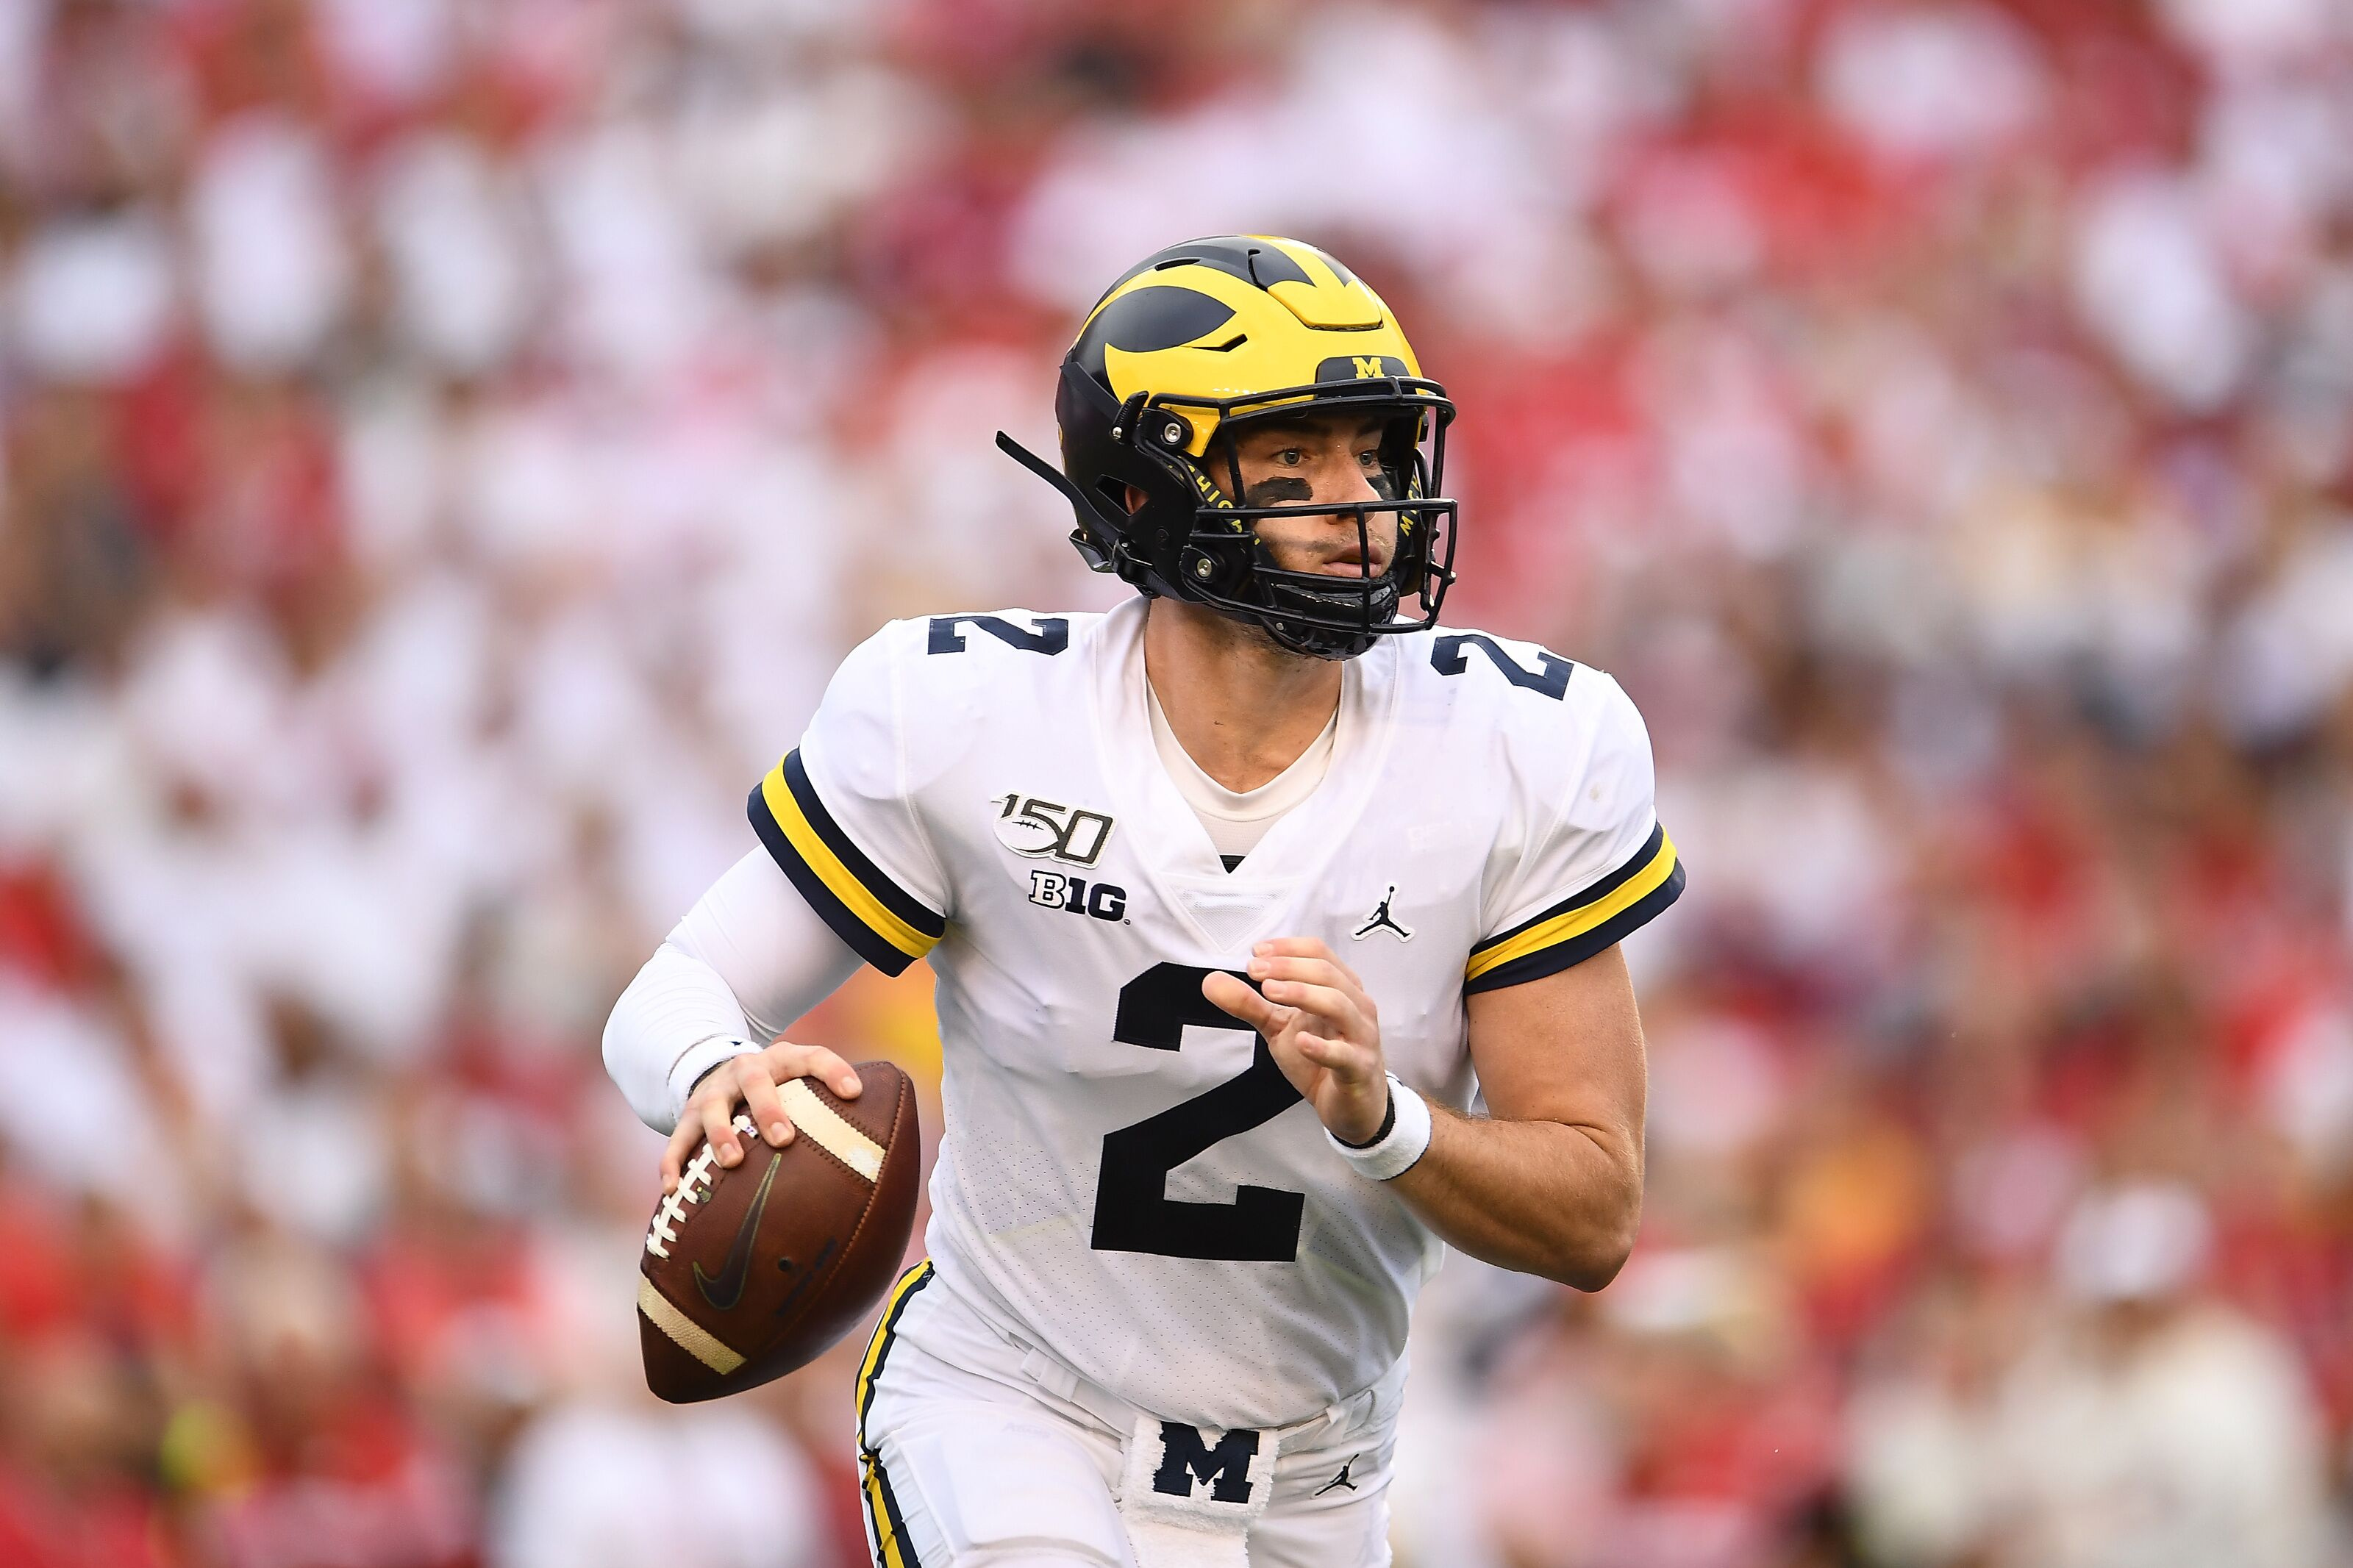 Michigan Football: Is Shea Patterson up for challenge of Penn State?